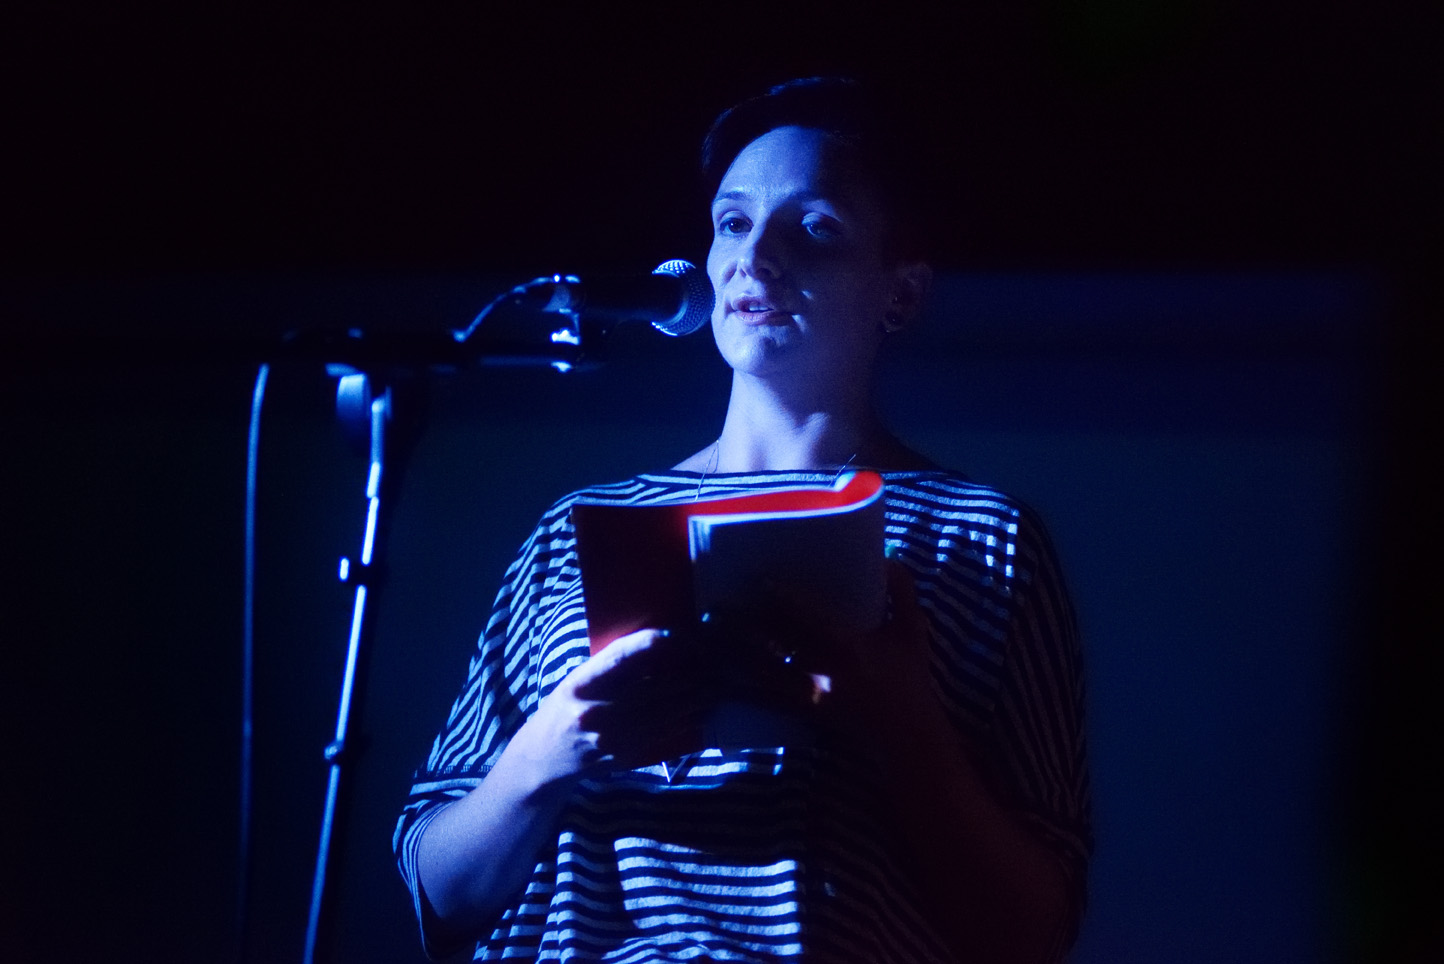 Heather Parry, reading at Launch Party, ROST. Photo: Andrew Mckenna